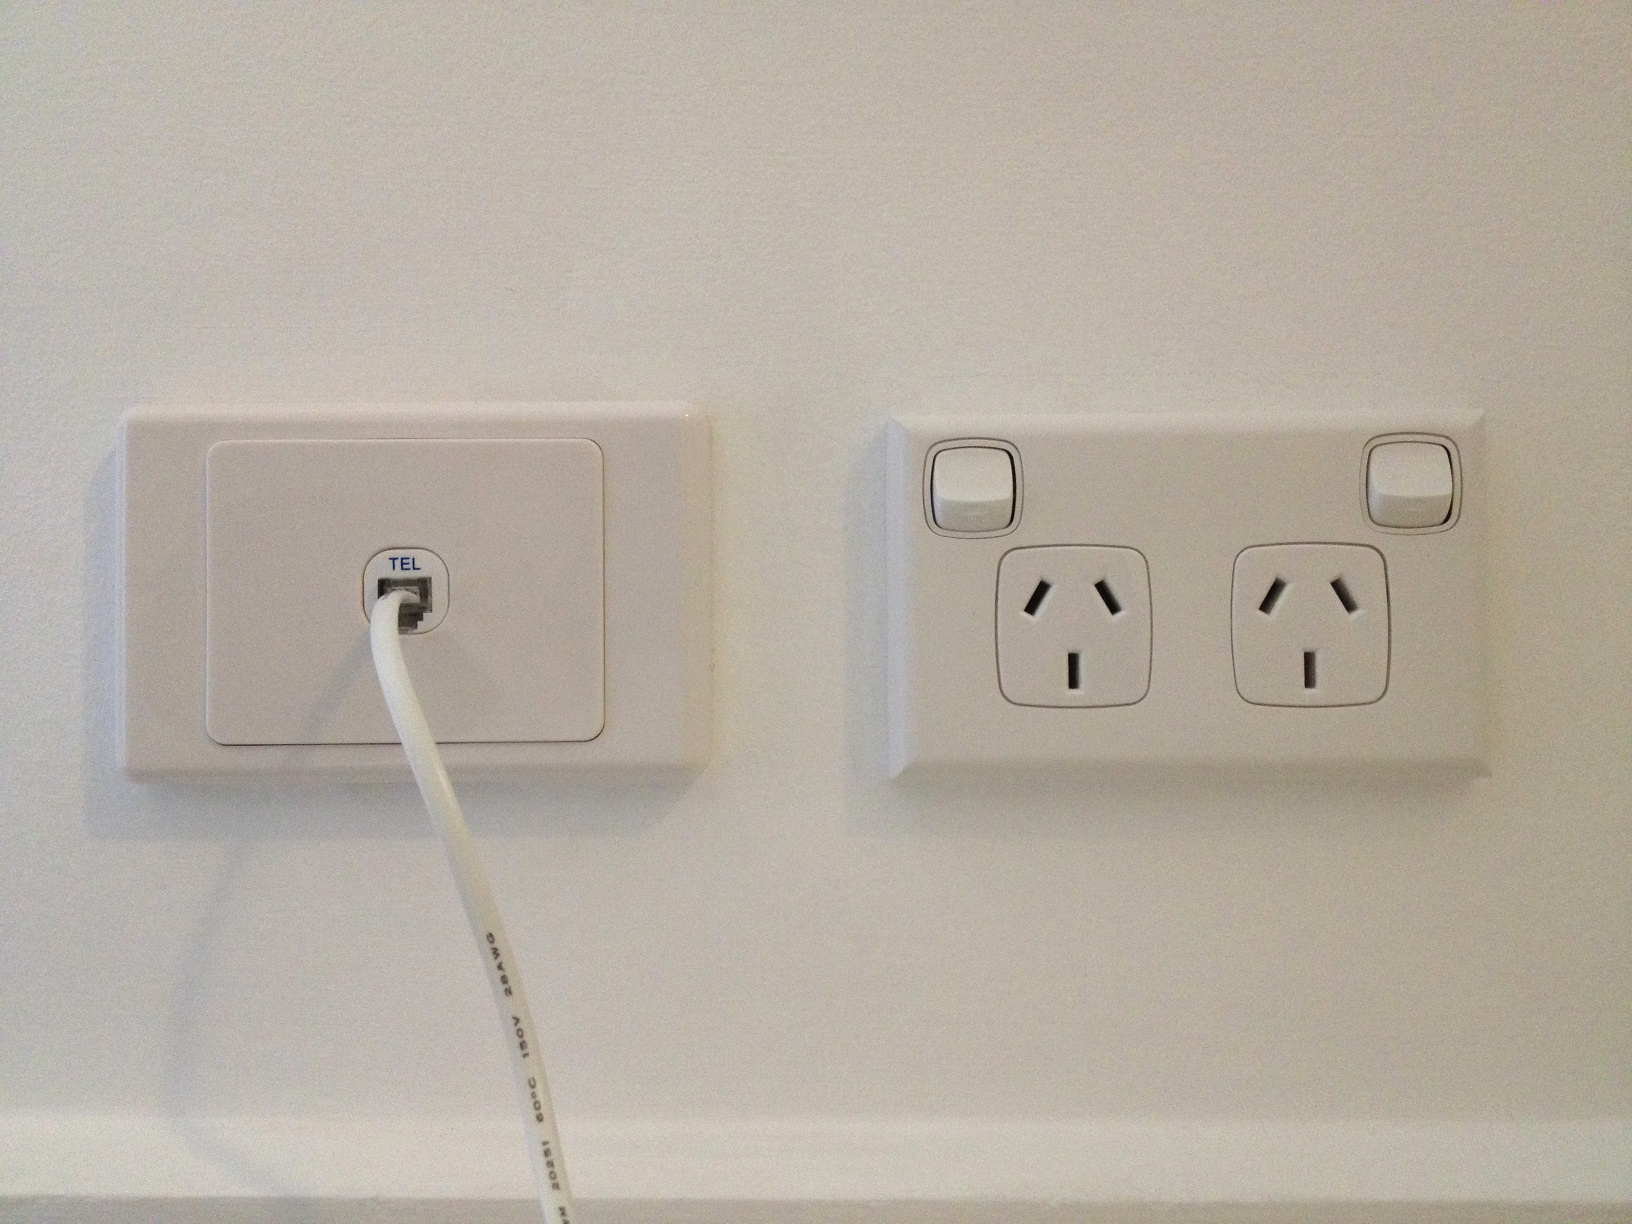 phone socket upgraded1?w=640&h=480 upgrading a 600 series phone socket to rj11 tp69 telstra wall plate wiring diagram at highcare.asia